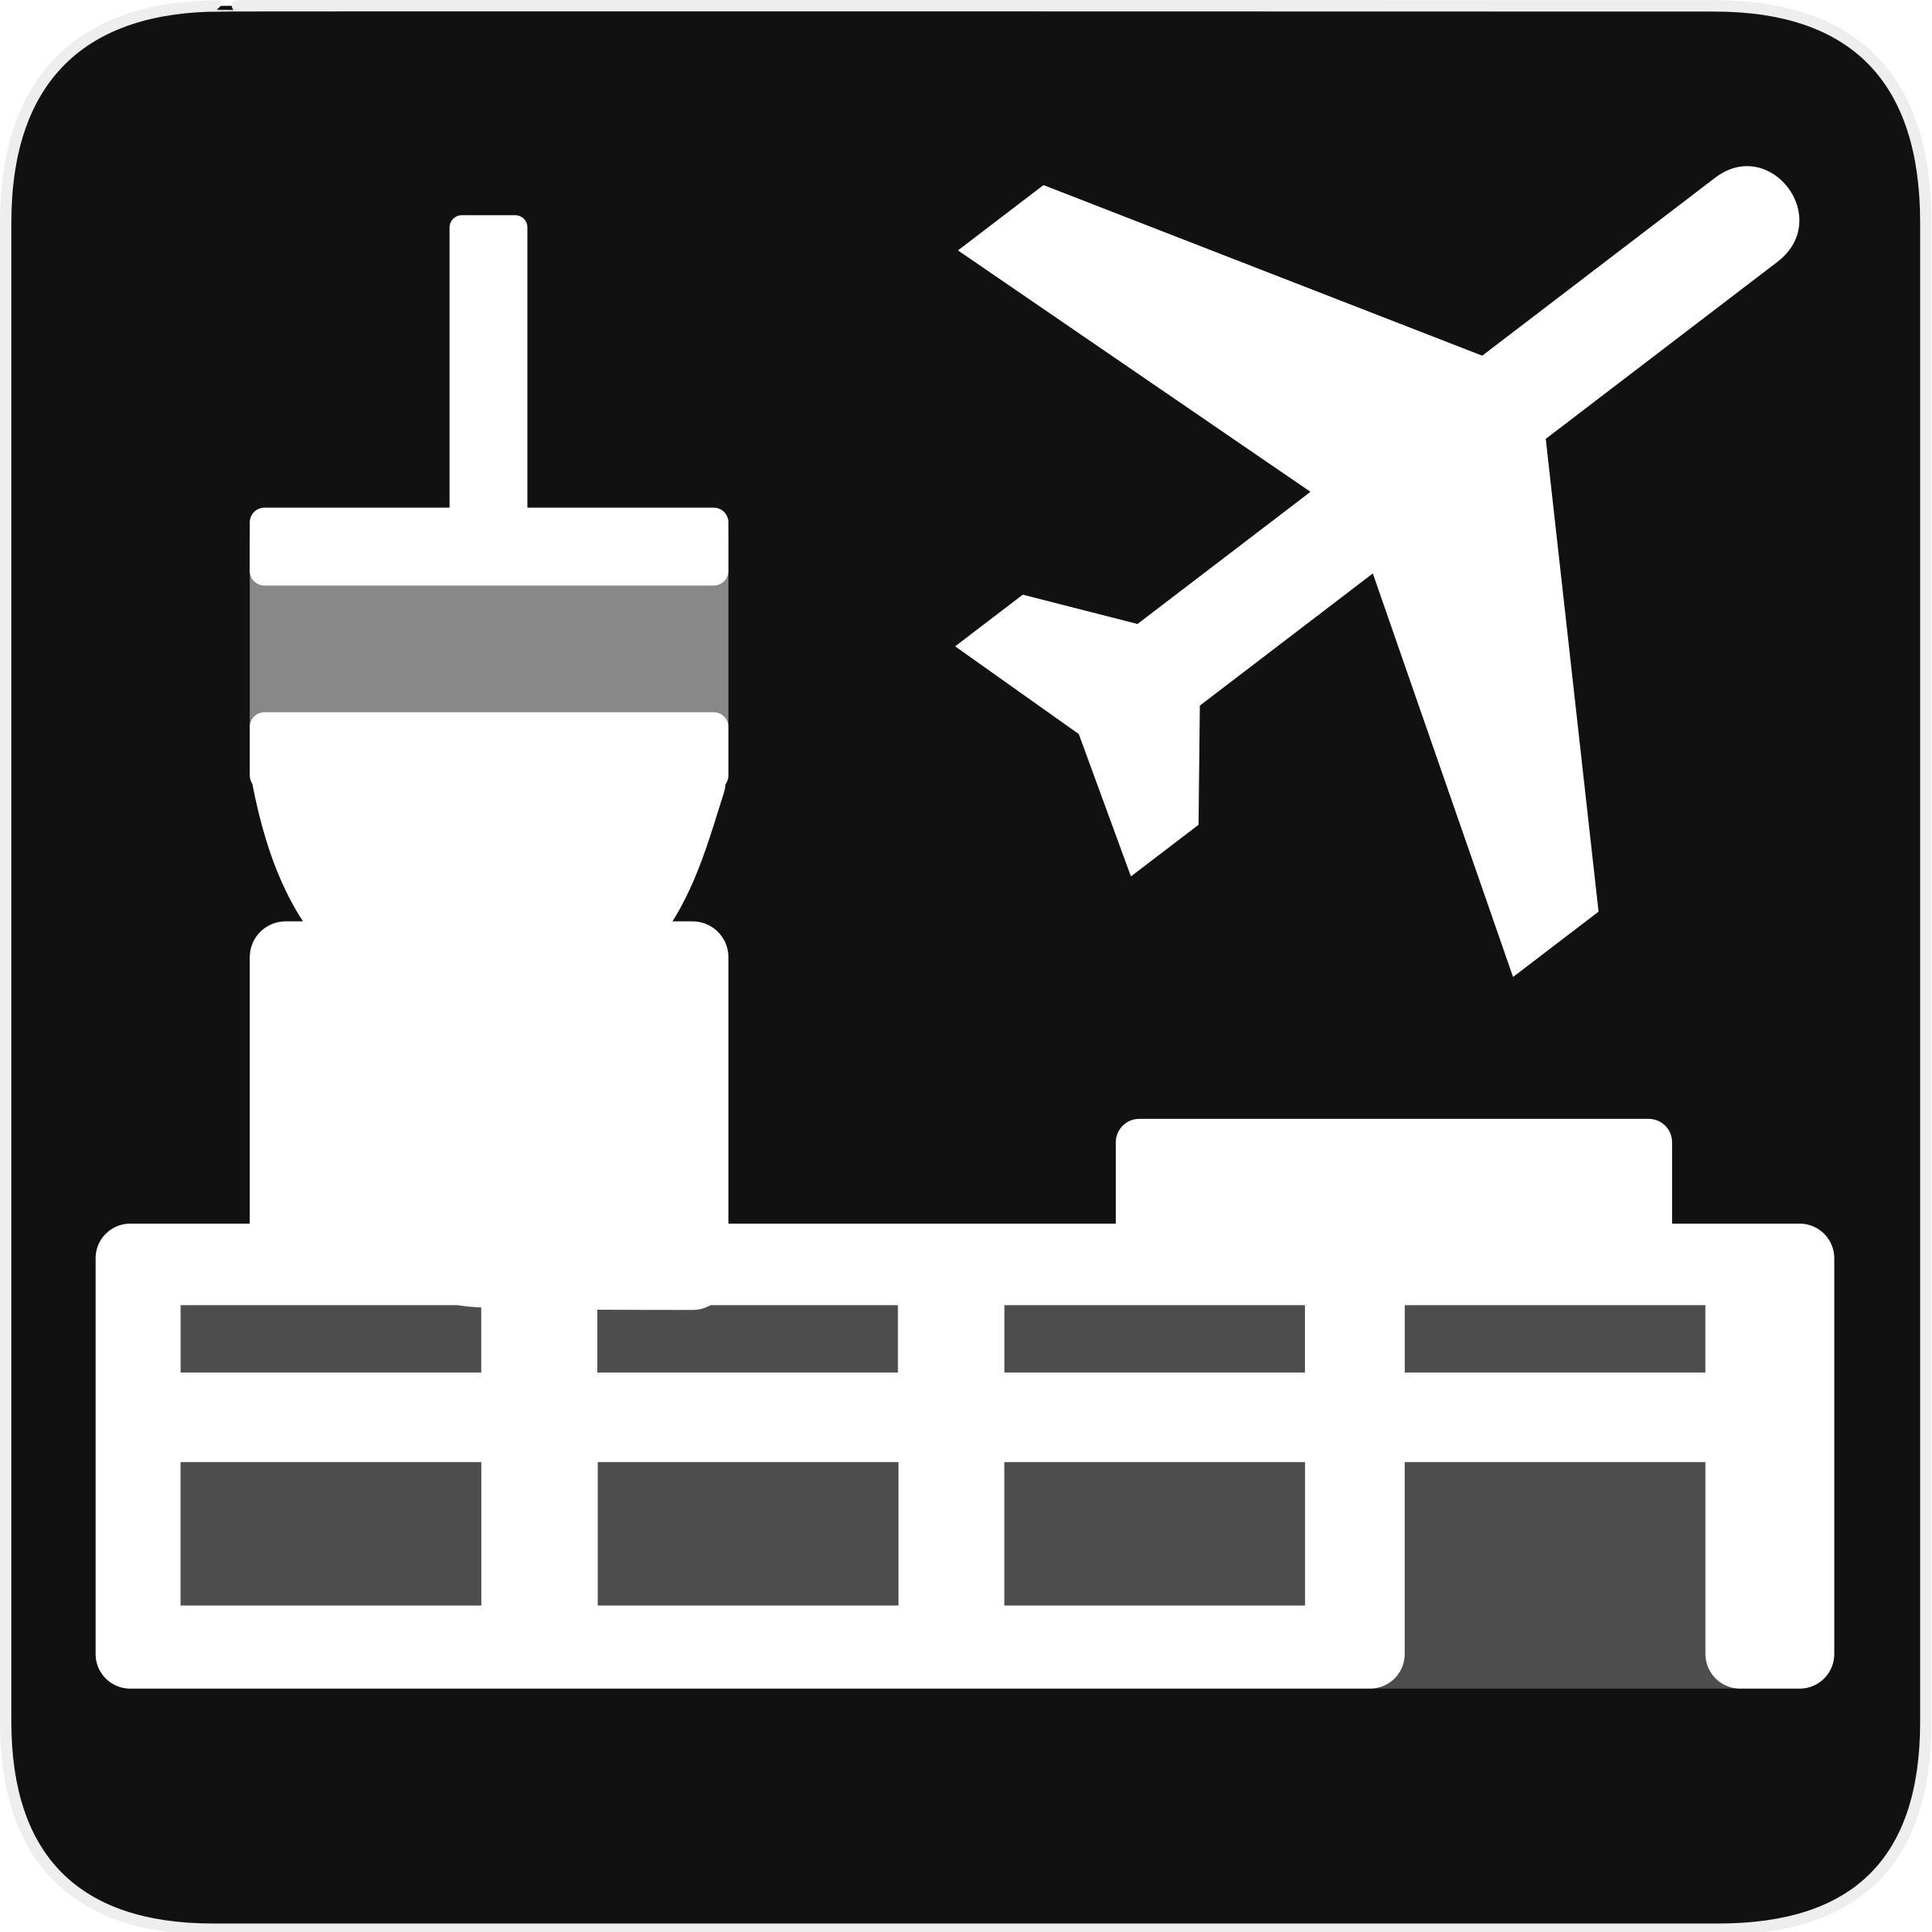 Airport clipart airport building. Terminal icons png free